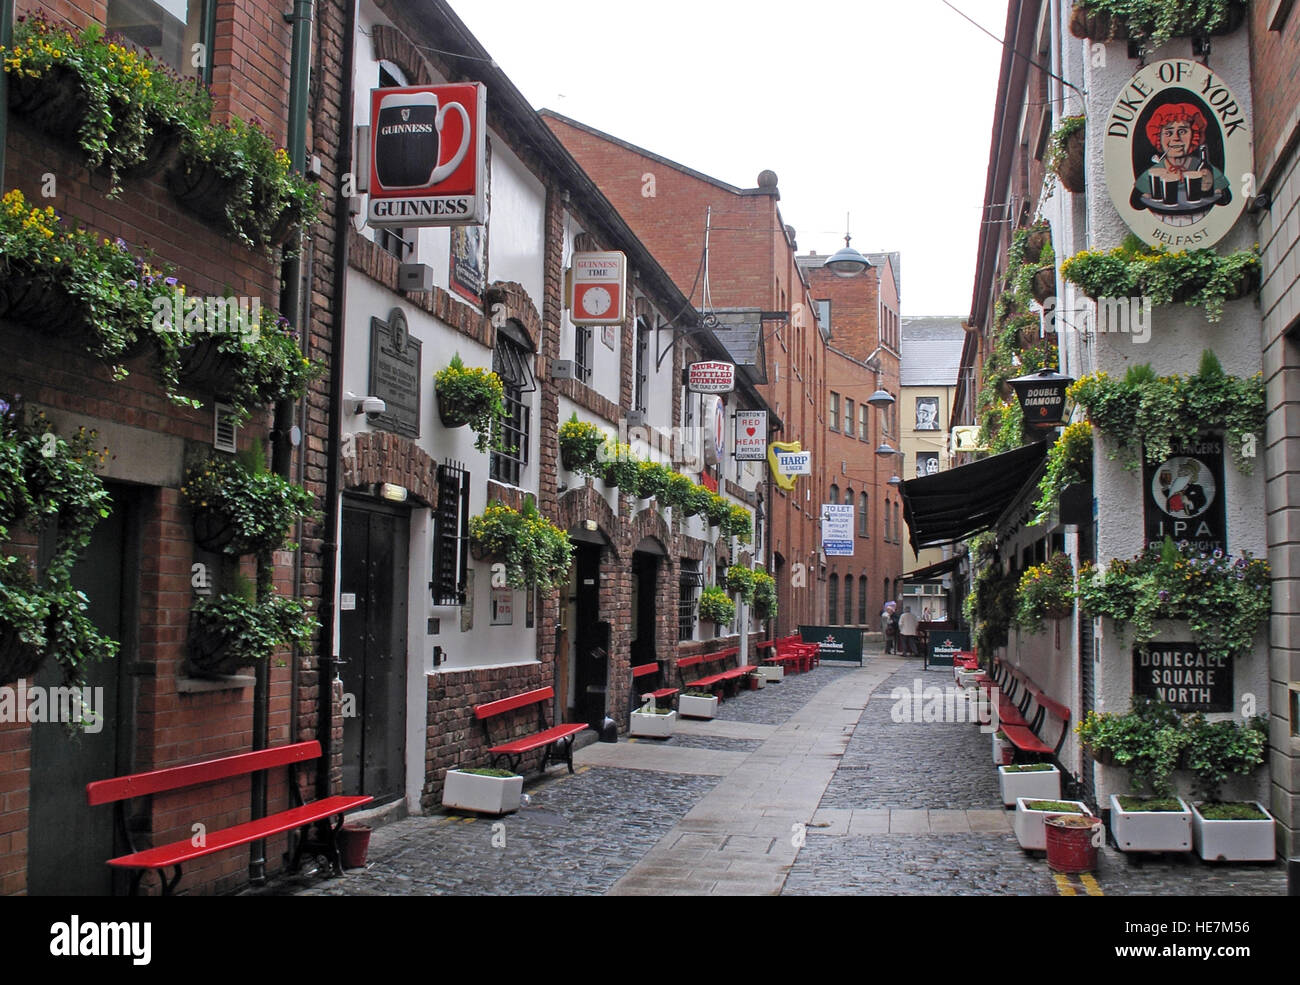 BT1,bars,pubs,duke,of,york,alley,off,Donegall St,street,drinks,drinking,classic,ale,beer,bers,ales,half,bap,area,craic,murals,art,painting,painting,artwork,artworks,guinness,Cathedral Quarter,Half Bap,GoTonySmith,@HotpixUK,Tony,Smith,UK,GB,Great,Britain,United,Kingdom,Irish,British,Ireland,problem,with,problem with,issue with,NI,Northern,Northern Ireland,Belfast,City,Centre,Art,Artists,the,troubles,The Troubles,Good Friday Agreement,Peace,honour,painting,wall,walls,tribute,republicanism,Fight,Justice,West,Beal,feirste,martyrs,social,tour,tourism,tourists,urban,six,counties,6,backdrop,county,Antrim,Buy Pictures of,Buy Images Of,Images of,Stock Images,Tony Smith,United Kingdom,Great Britain,British Isles